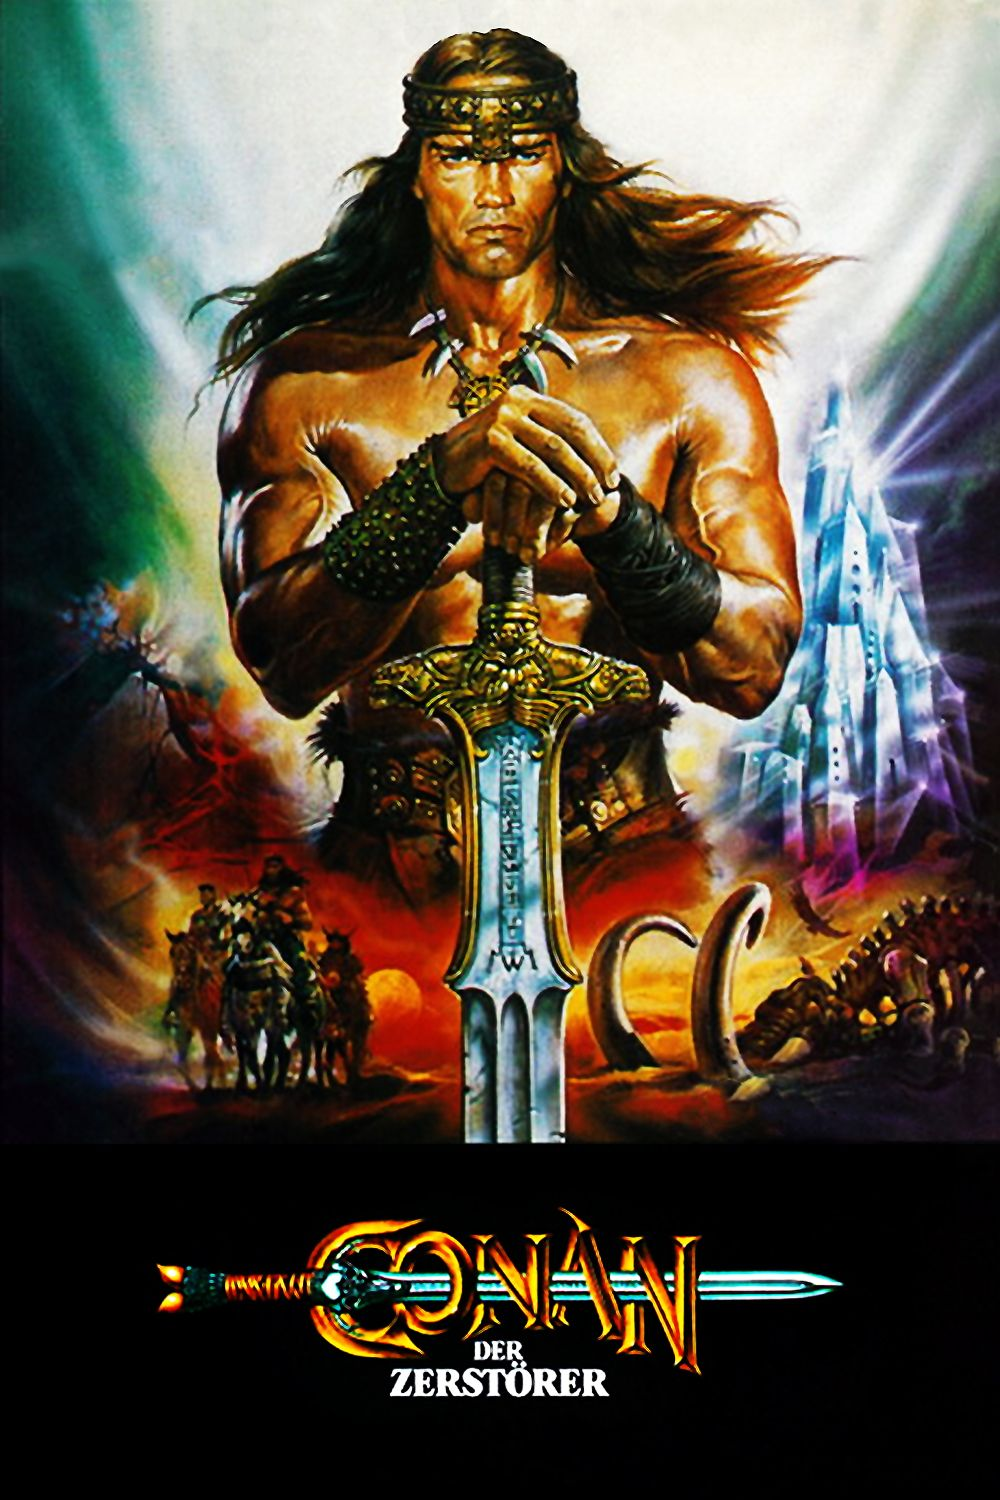 Pin by El Rome on Conan | Movie posters, Conan the